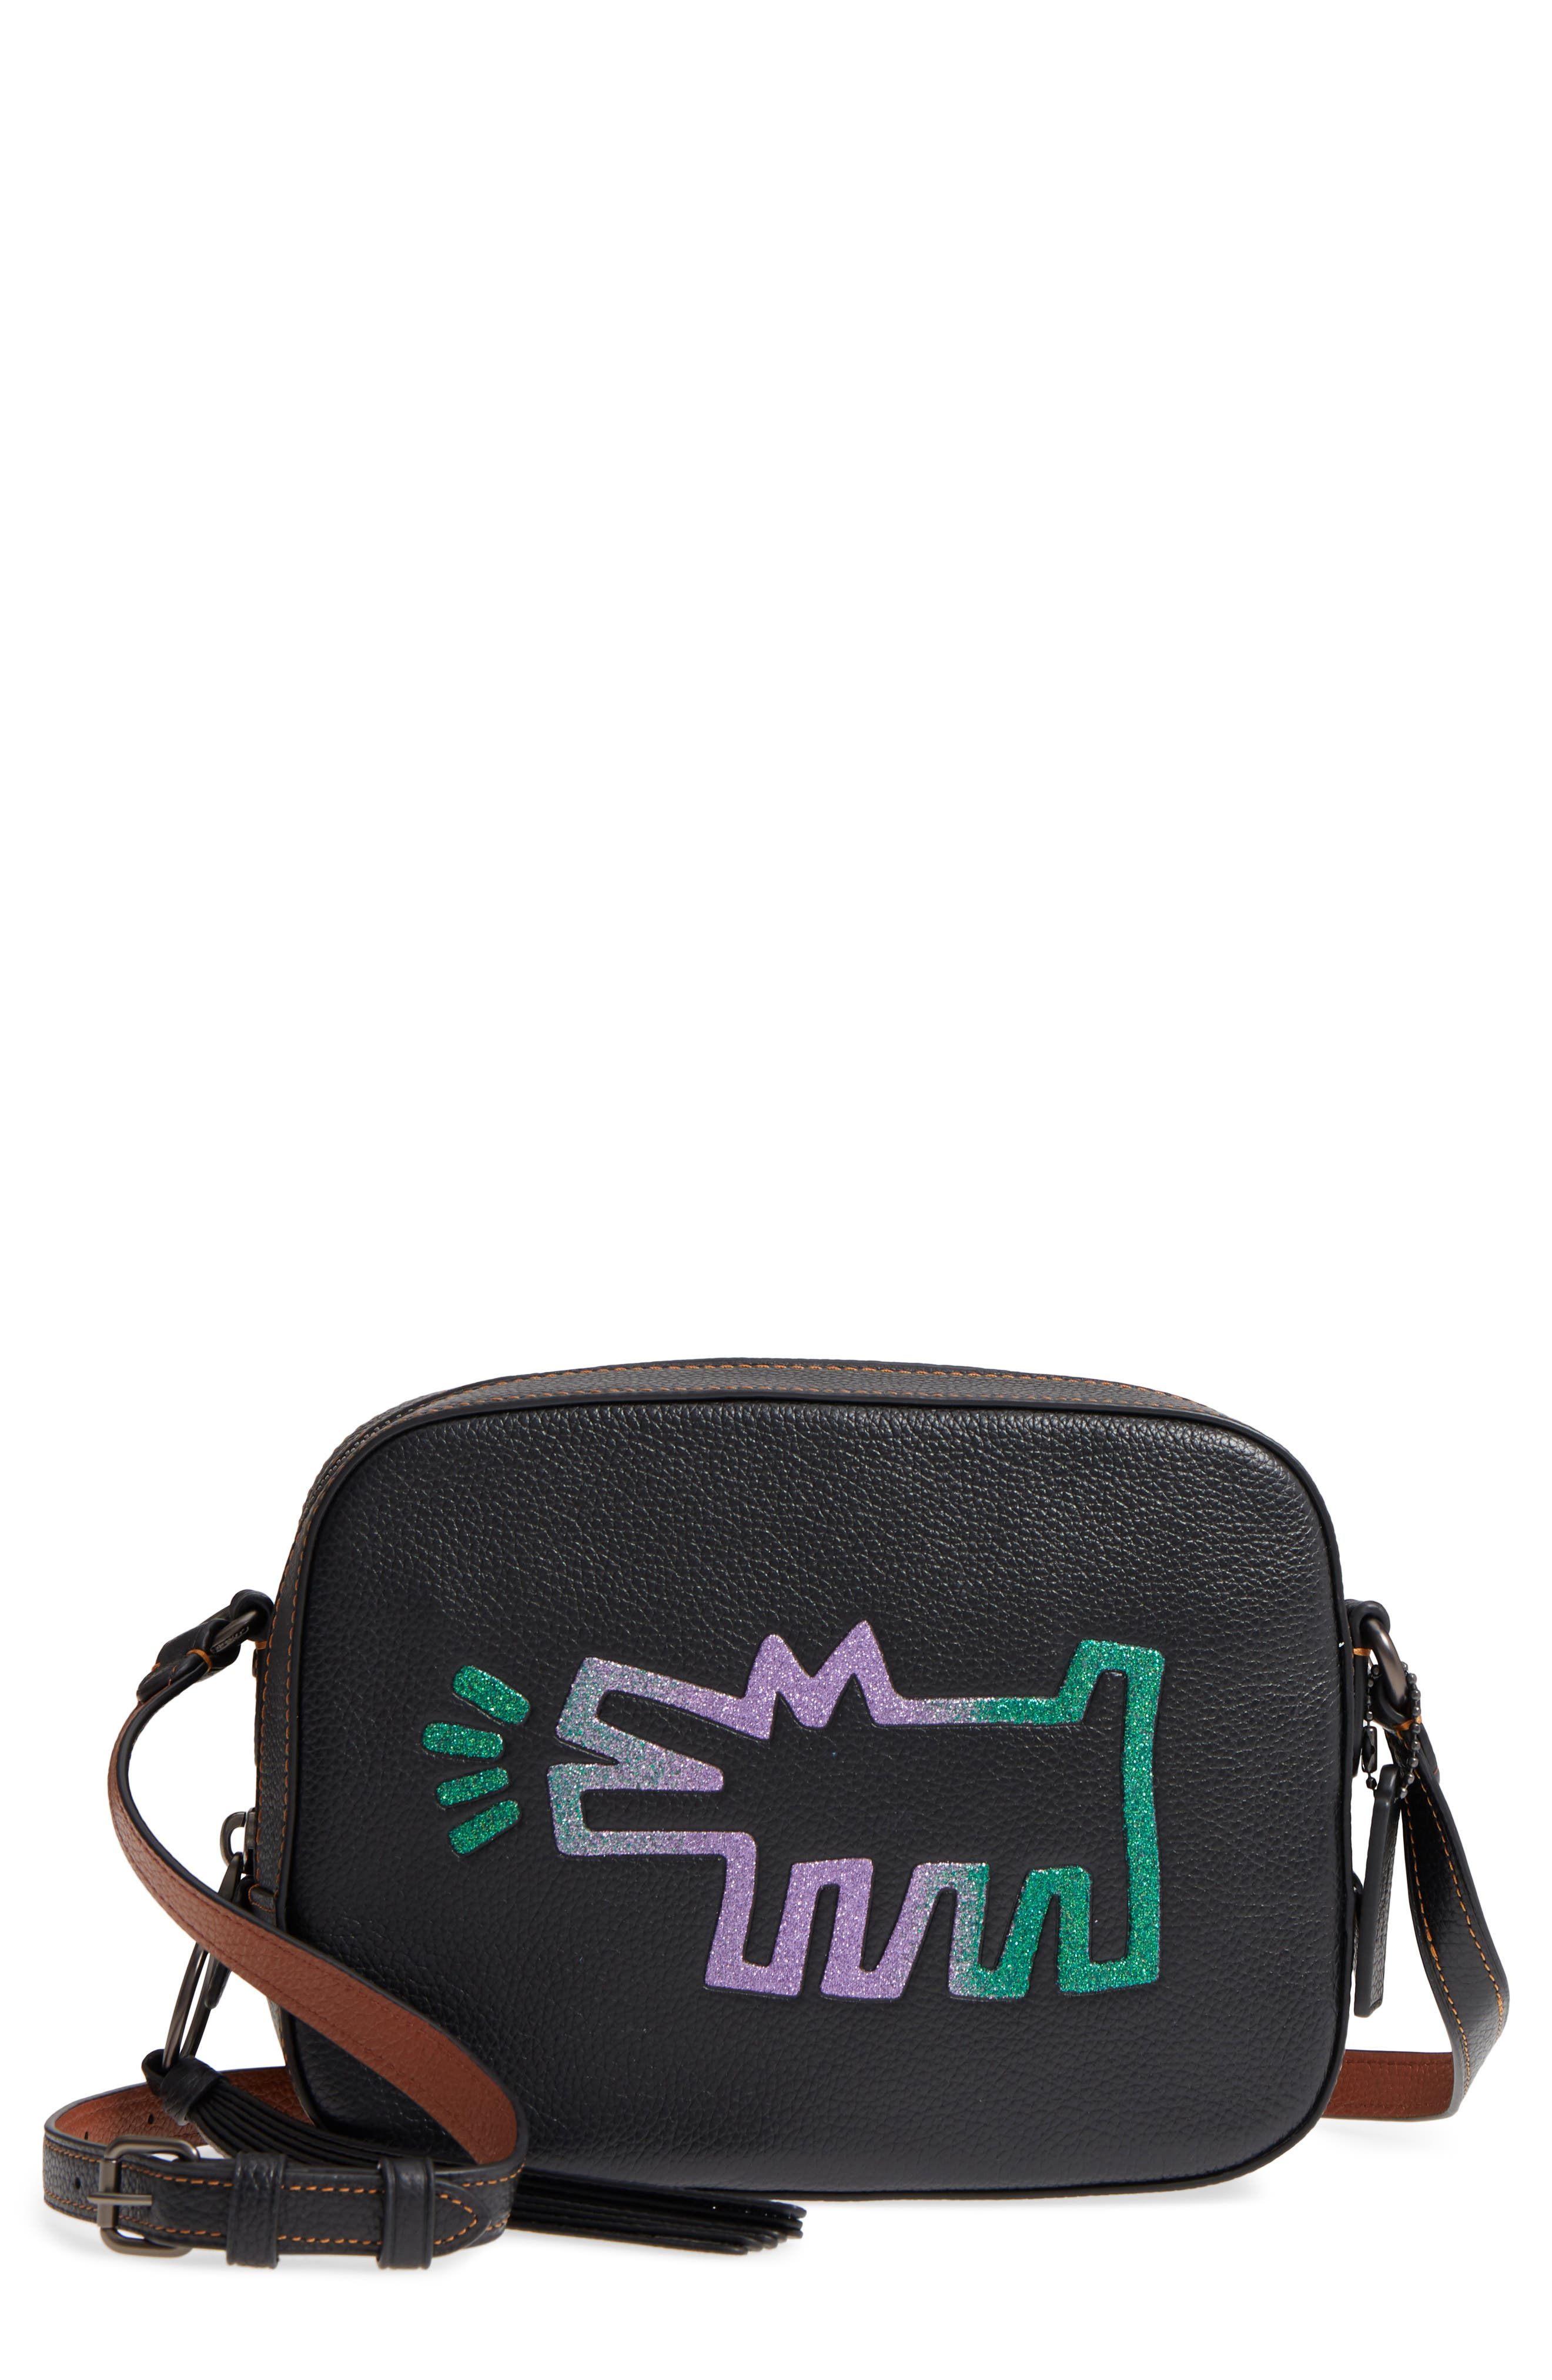 COACH x Keith Haring Barking Crazy Dog Leather Camera Bag